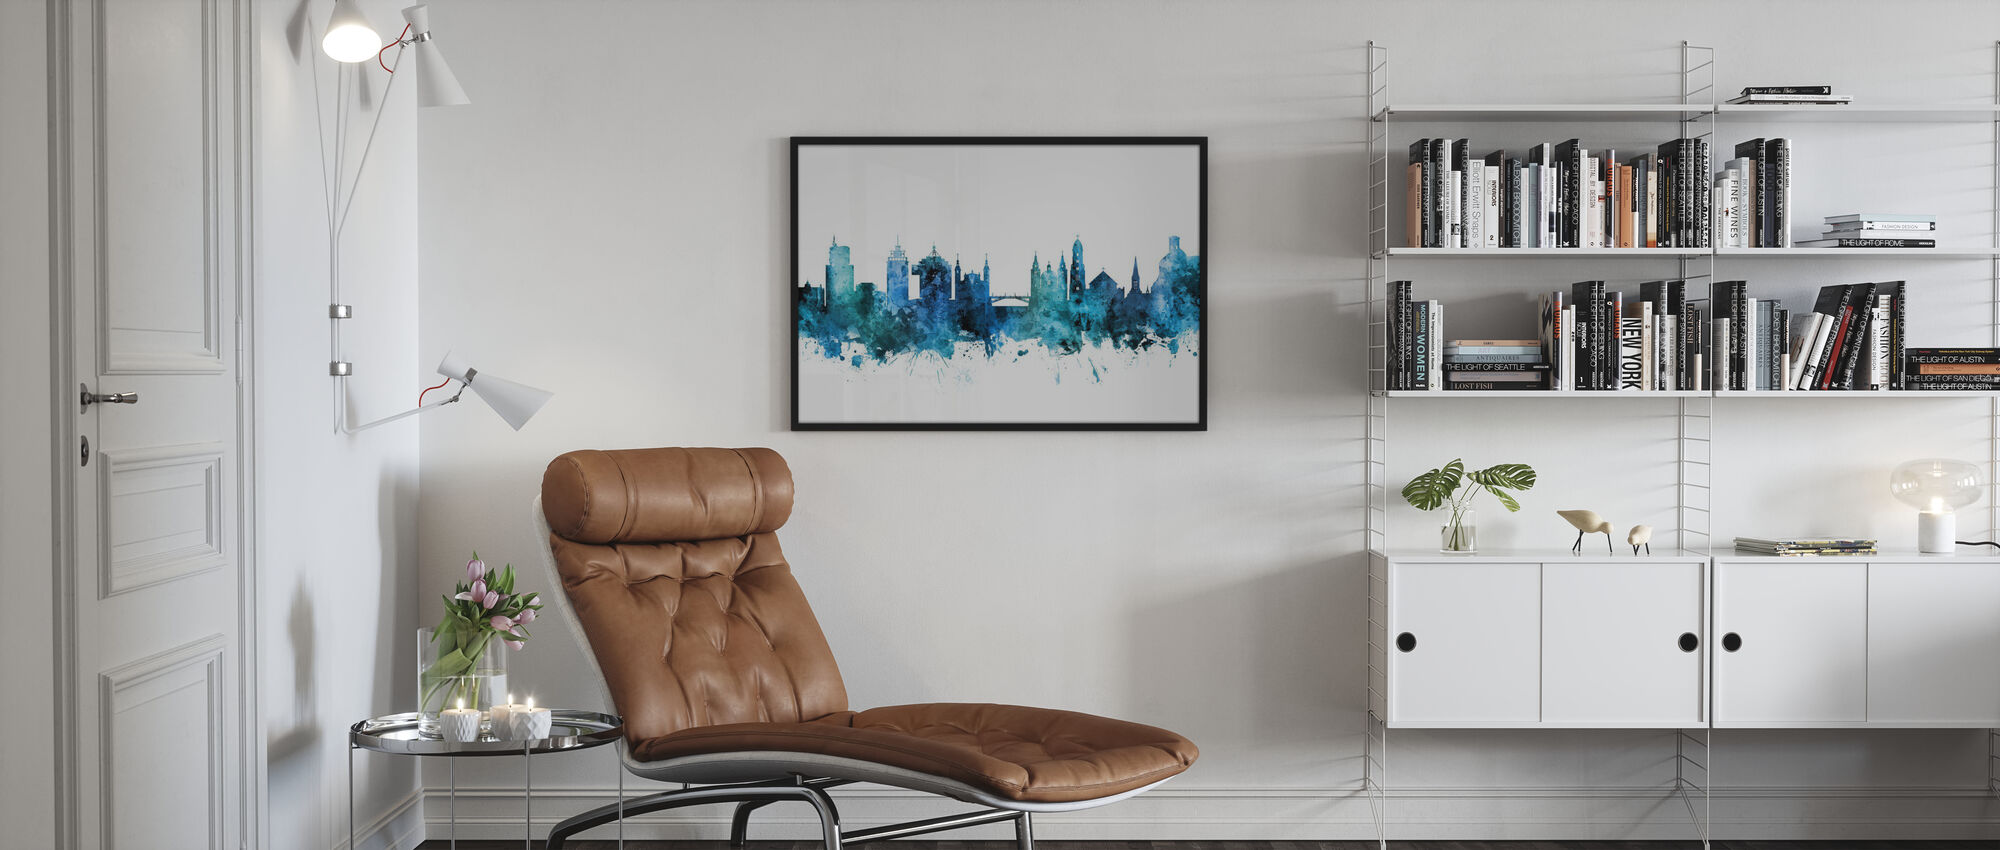 Ljubljana Solvenia Skyline - Framed print - Living Room